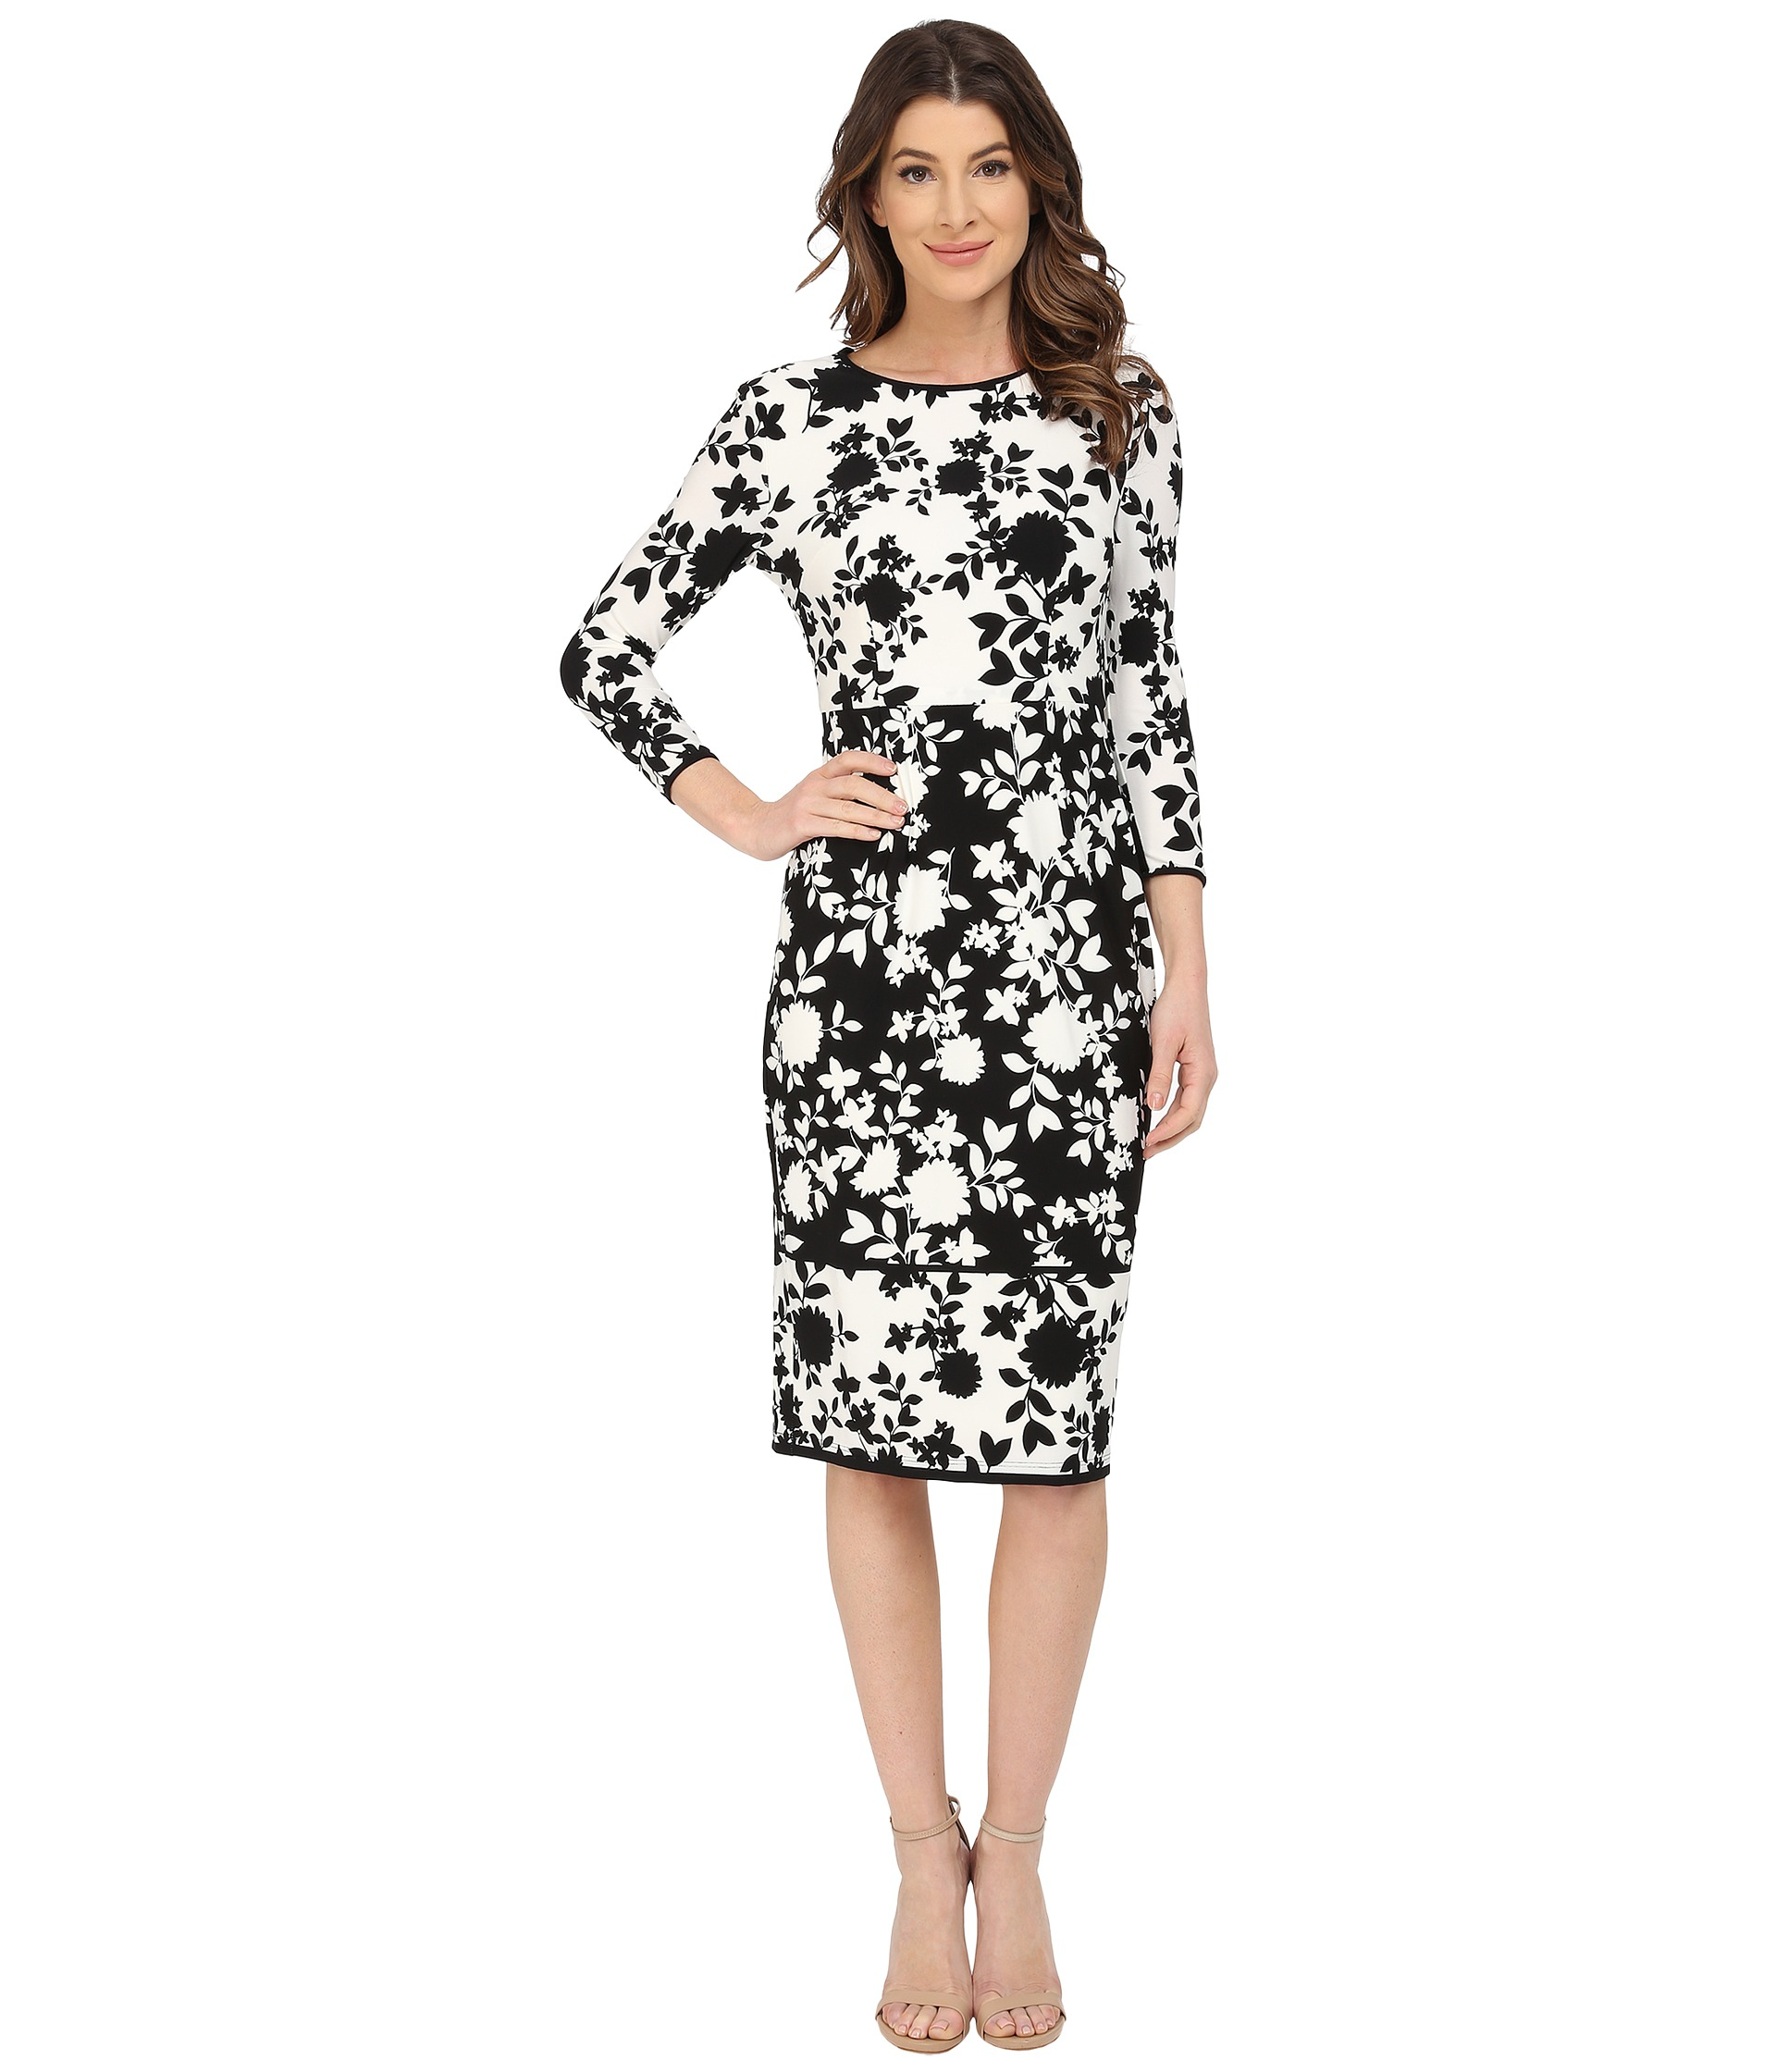 c44a31f718 Lyst - Maggy London Floral-print Matte Jersey Sheath Dress in White